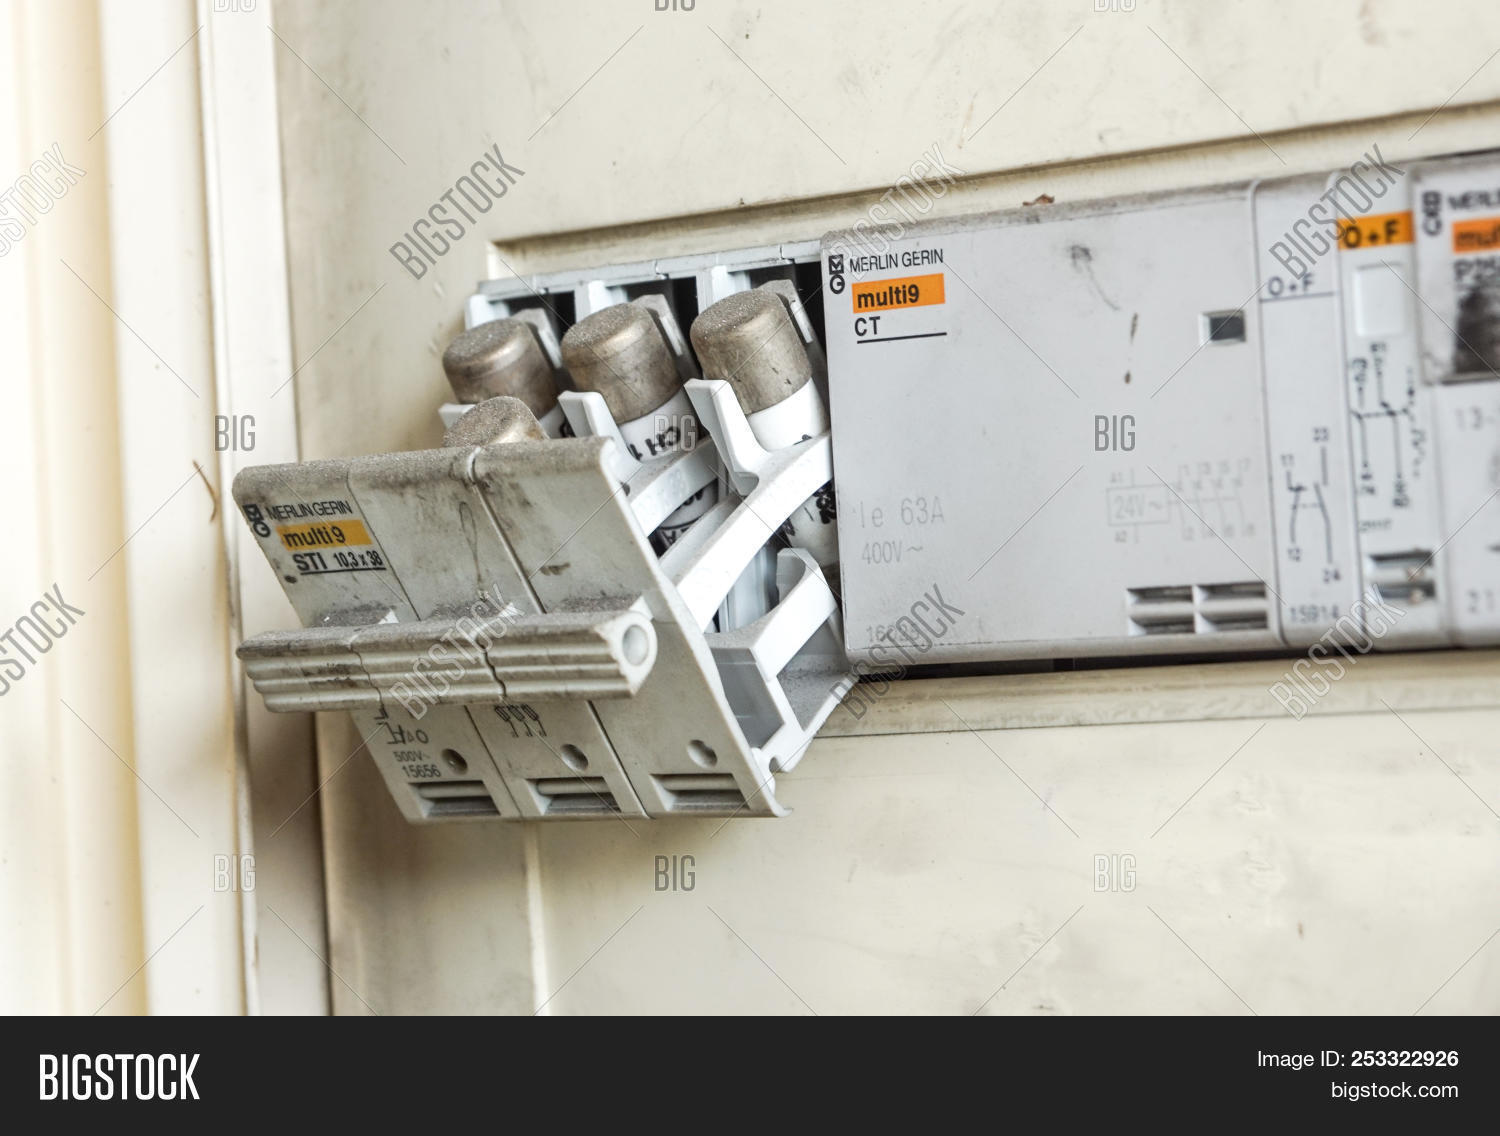 Old Big Fuse Box Wiring Diagram Schematics Home Glass Milan Italy June Image Photo Free Trial Bigstock Cable